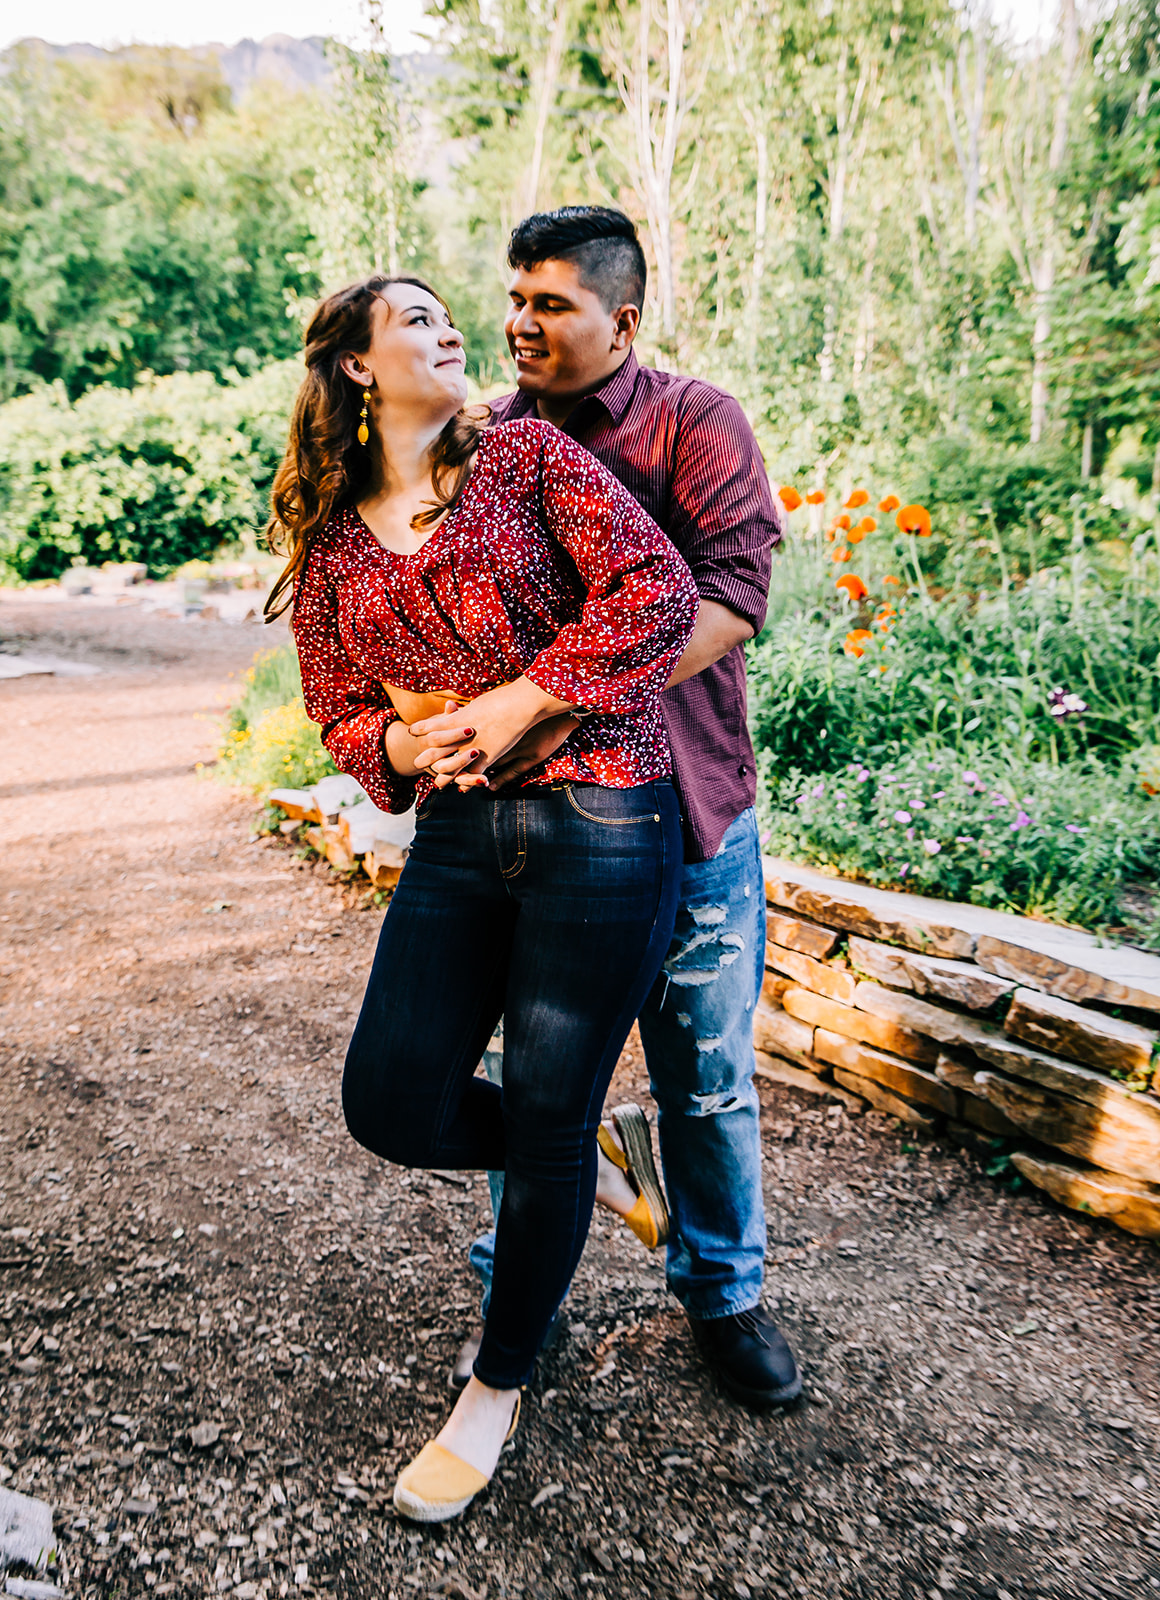 Couple during family pictures young married family members ogden botanical gardens family photos by bella alder photography in northern utah #bellaalderphoto #familypictures #outfitinspo #familyphotographer #ogdenutahfamilyphotographer #utahfamilyphotos #familyphotos #ogdenutah #botanicalgardens